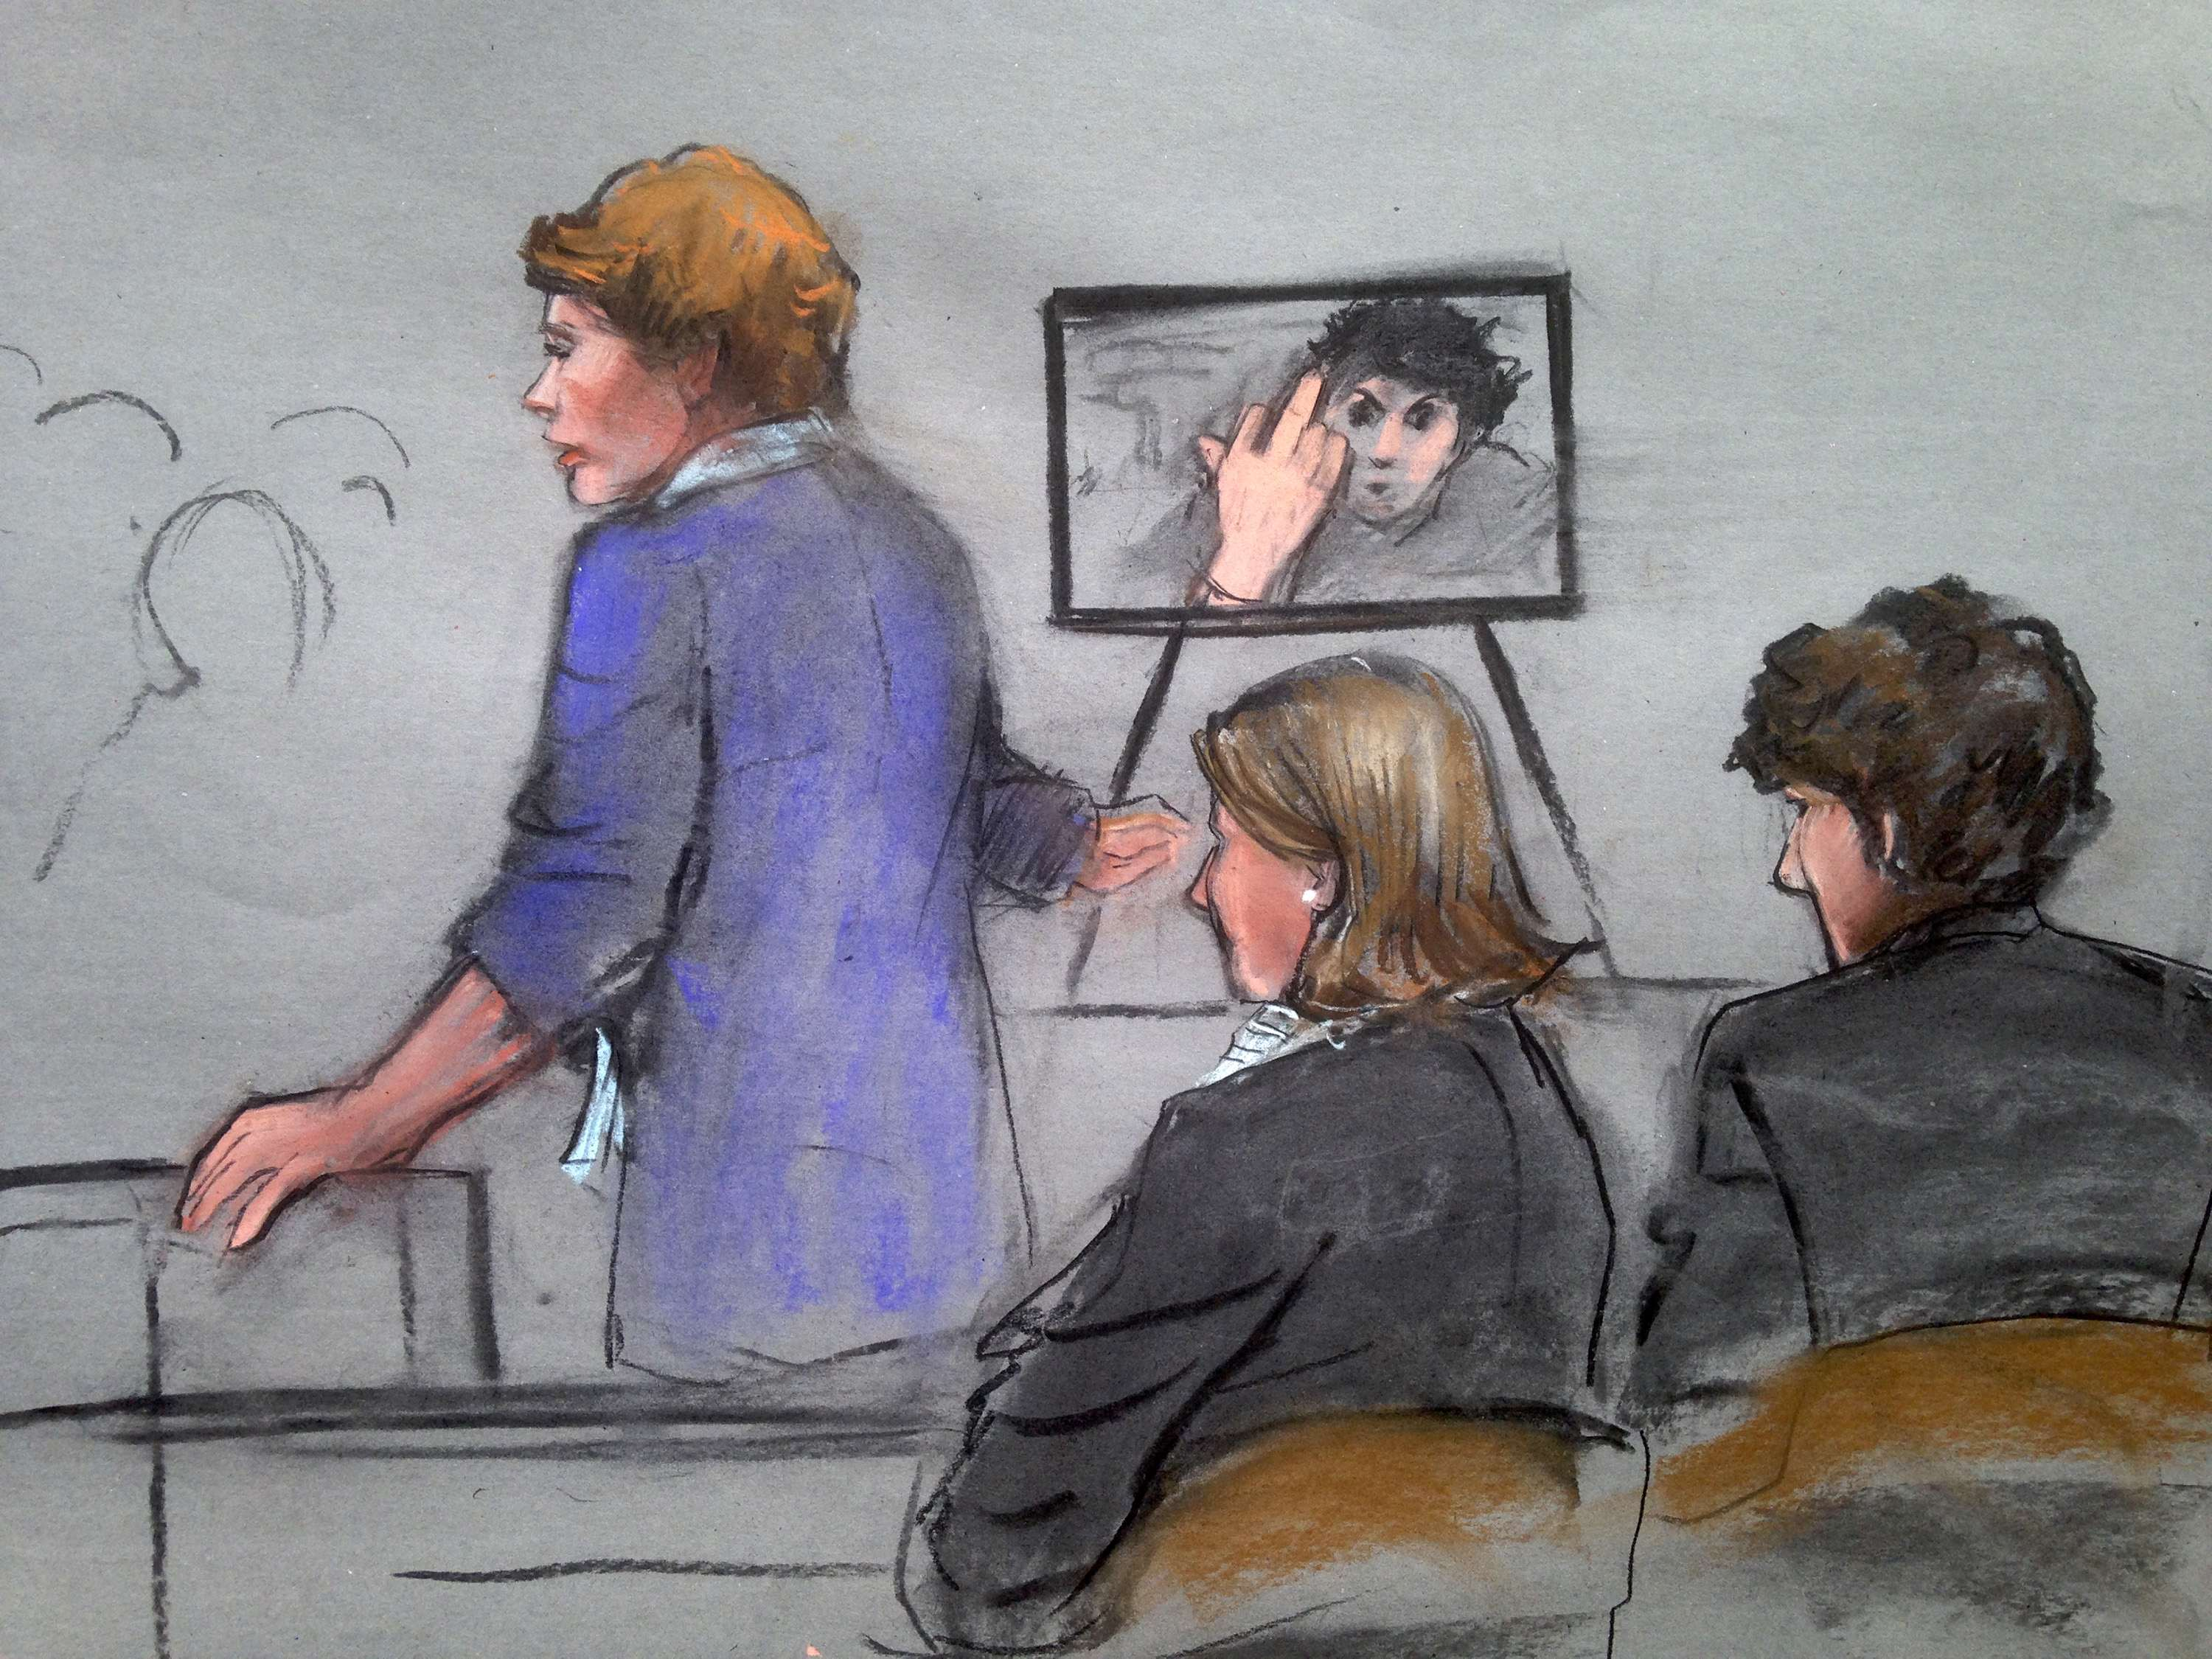 "Assistant U.S. Attorney Nadine Pellegrini (standing) speaks during the sentencing phase of the murder trial of Dzhokhar Tsarnaev, as Tsarnaev is seen gesturing in a photograph, in a courtroom sketch in Boston April 21, 2015. The Boston Marathon bombing was the ""essence of terror,"" Pellegrini said on Tuesday as the government began making its case that convicted bomber Tsarnaev should be sentenced to death for the 2013 attack and its aftermath. REUTERS/Jane Collins"